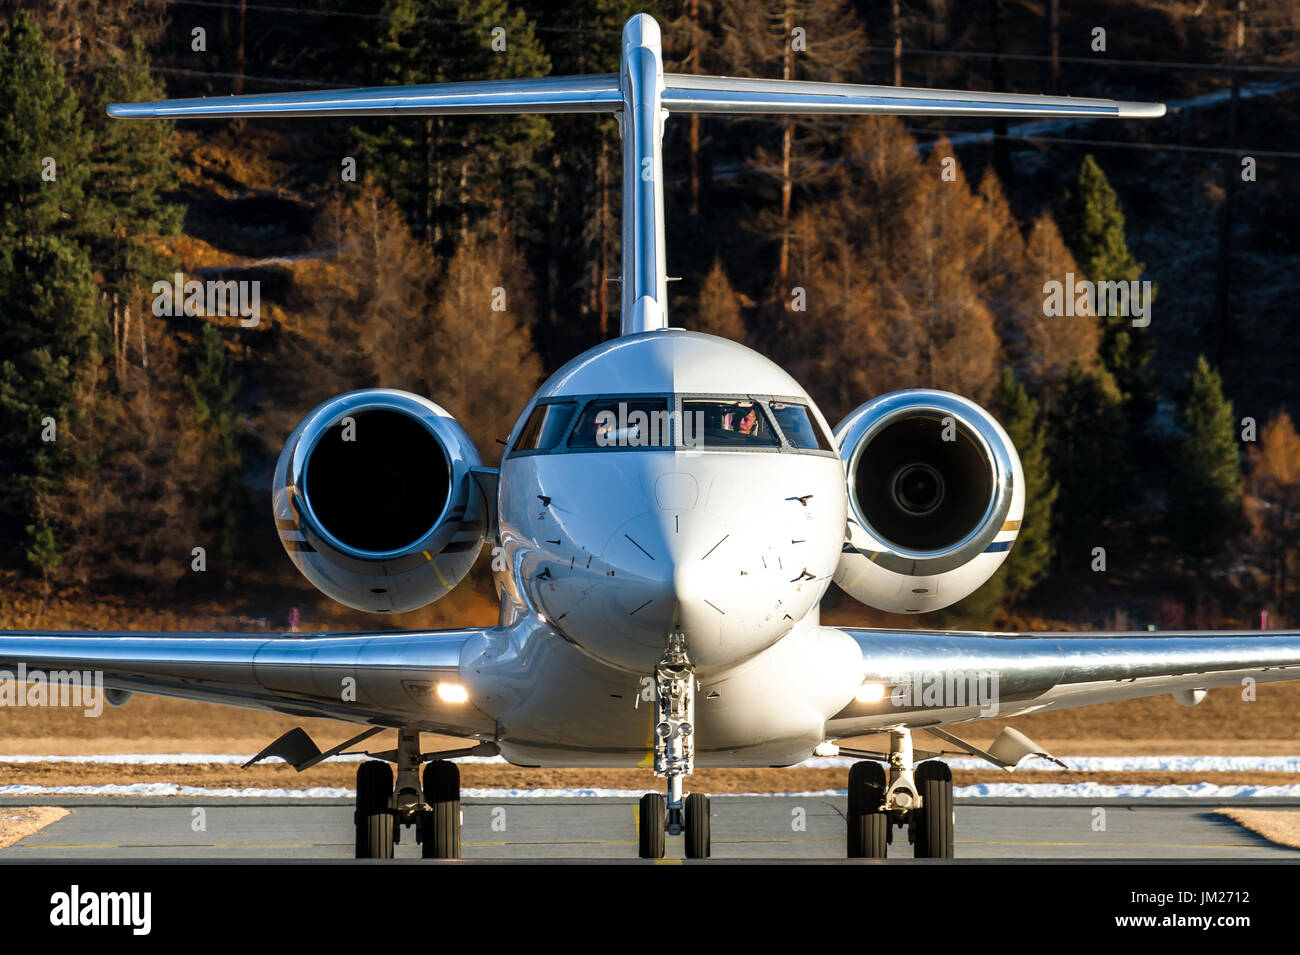 Bombardier Global 6000 GLEX just landed at Samedan Engadin Airport, Switzerland, near St.Moritz. Private aircraft called Bizjet used by vip for travel - Stock Image